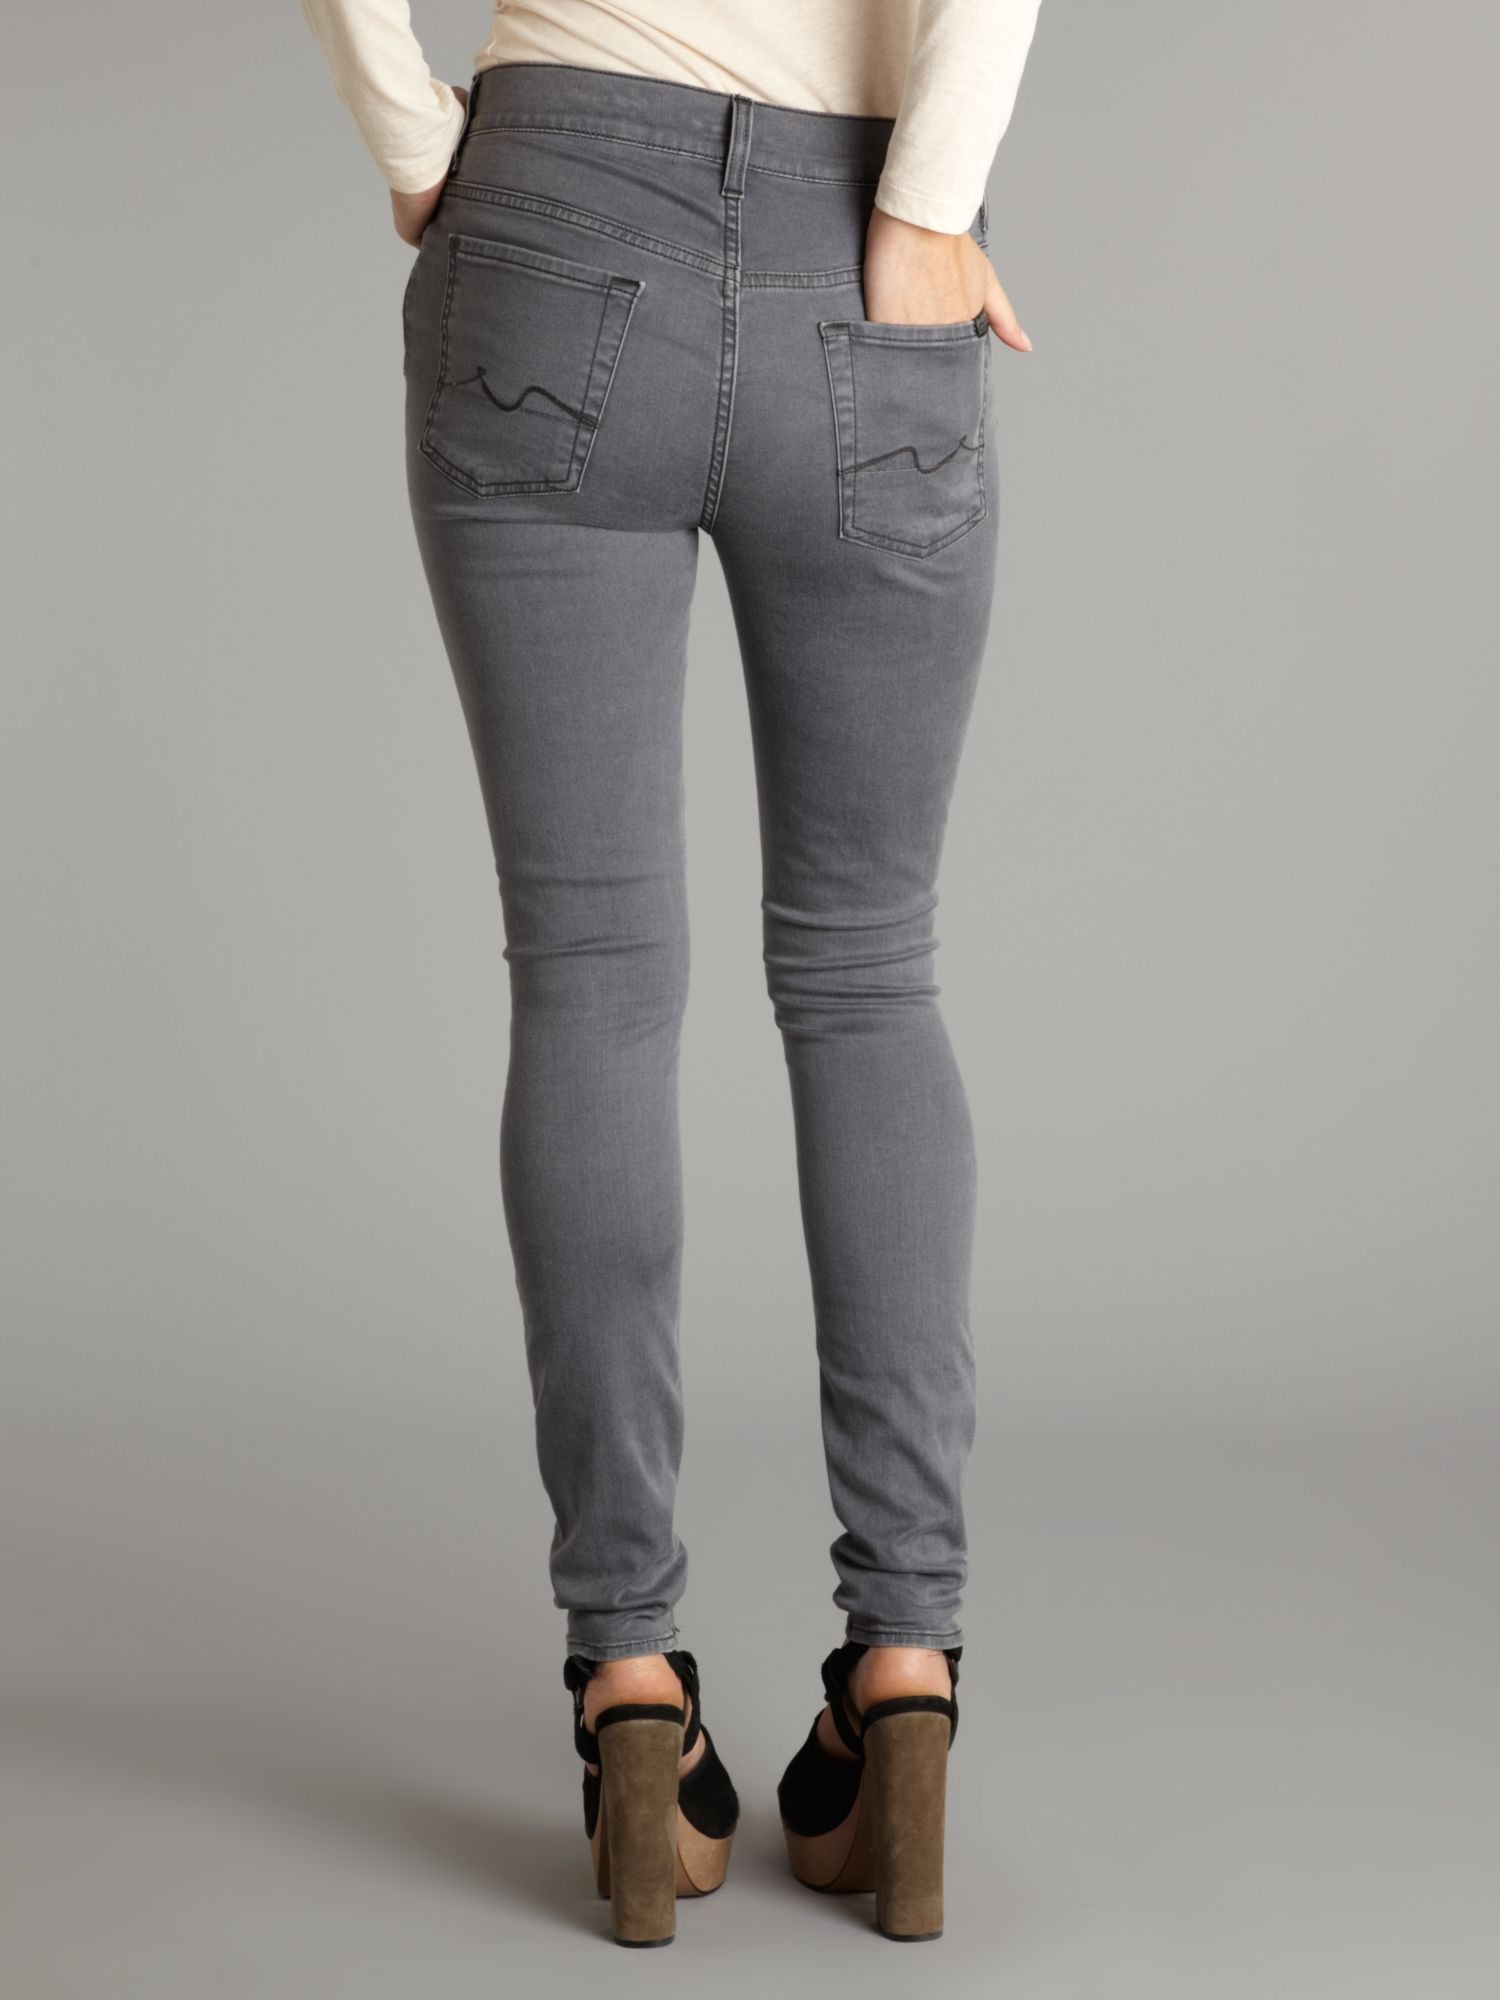 Gray High Waisted Jeans - Jeans Am